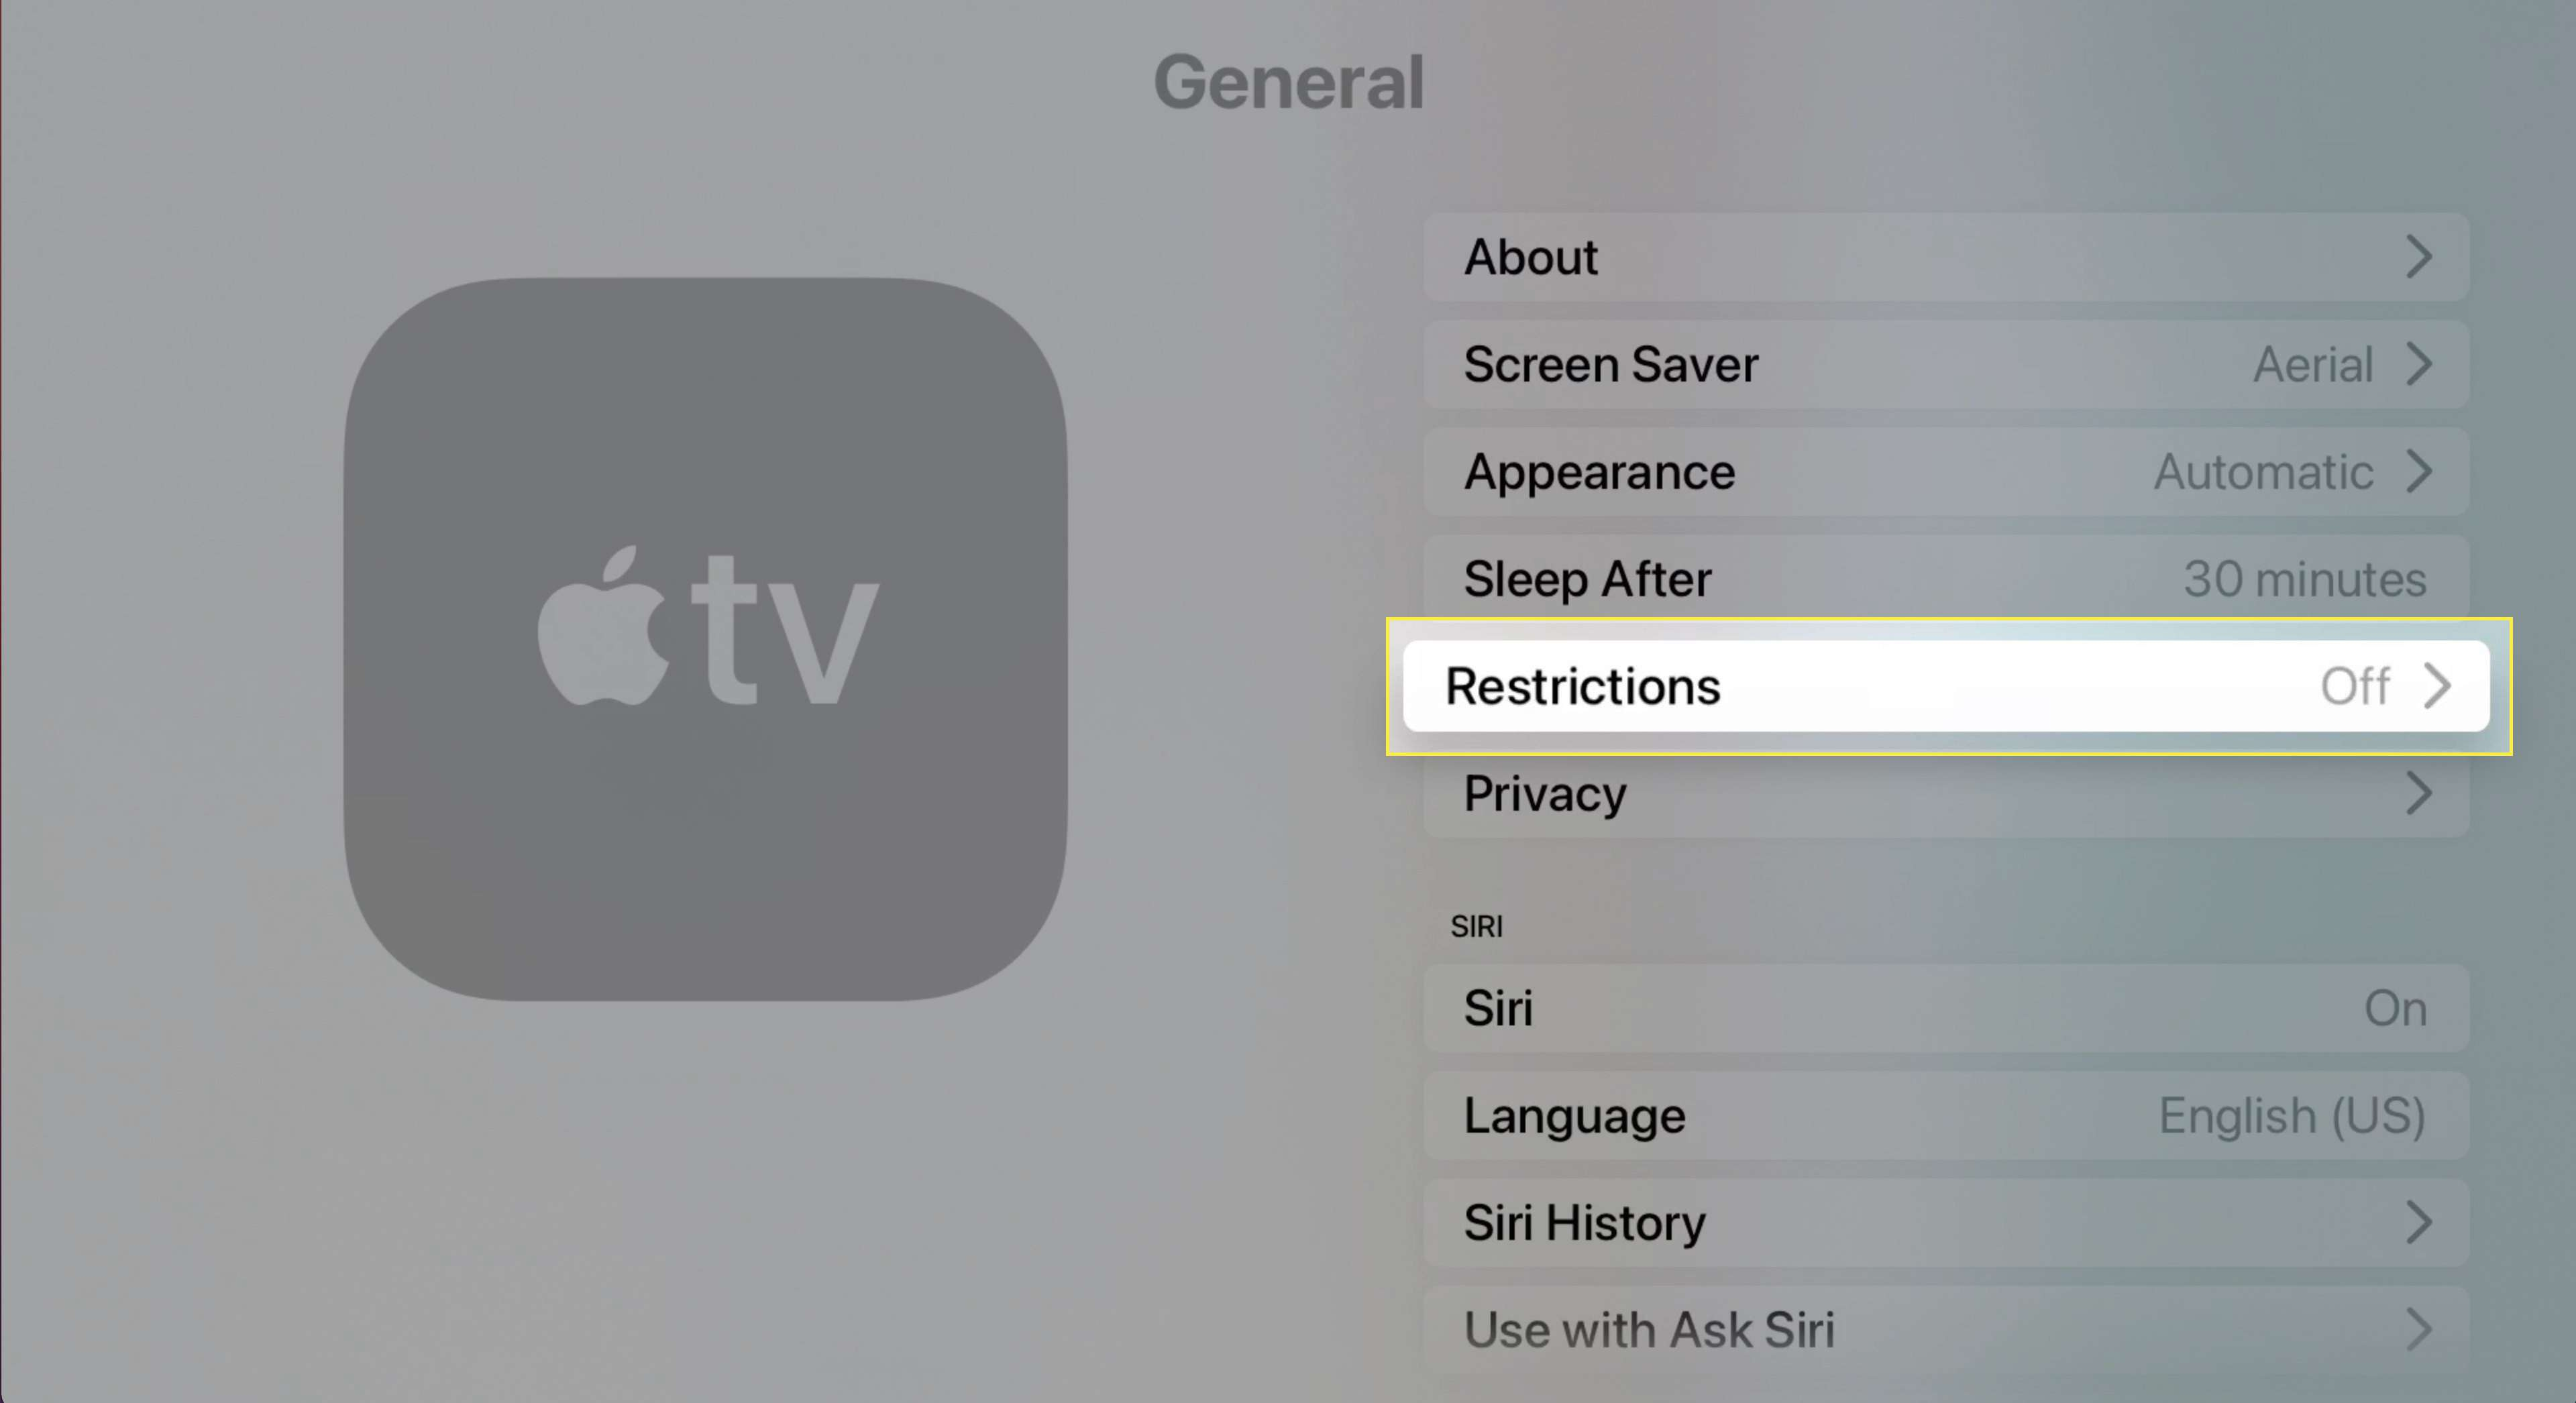 Apple TV General Settings with Restrictions highlighted